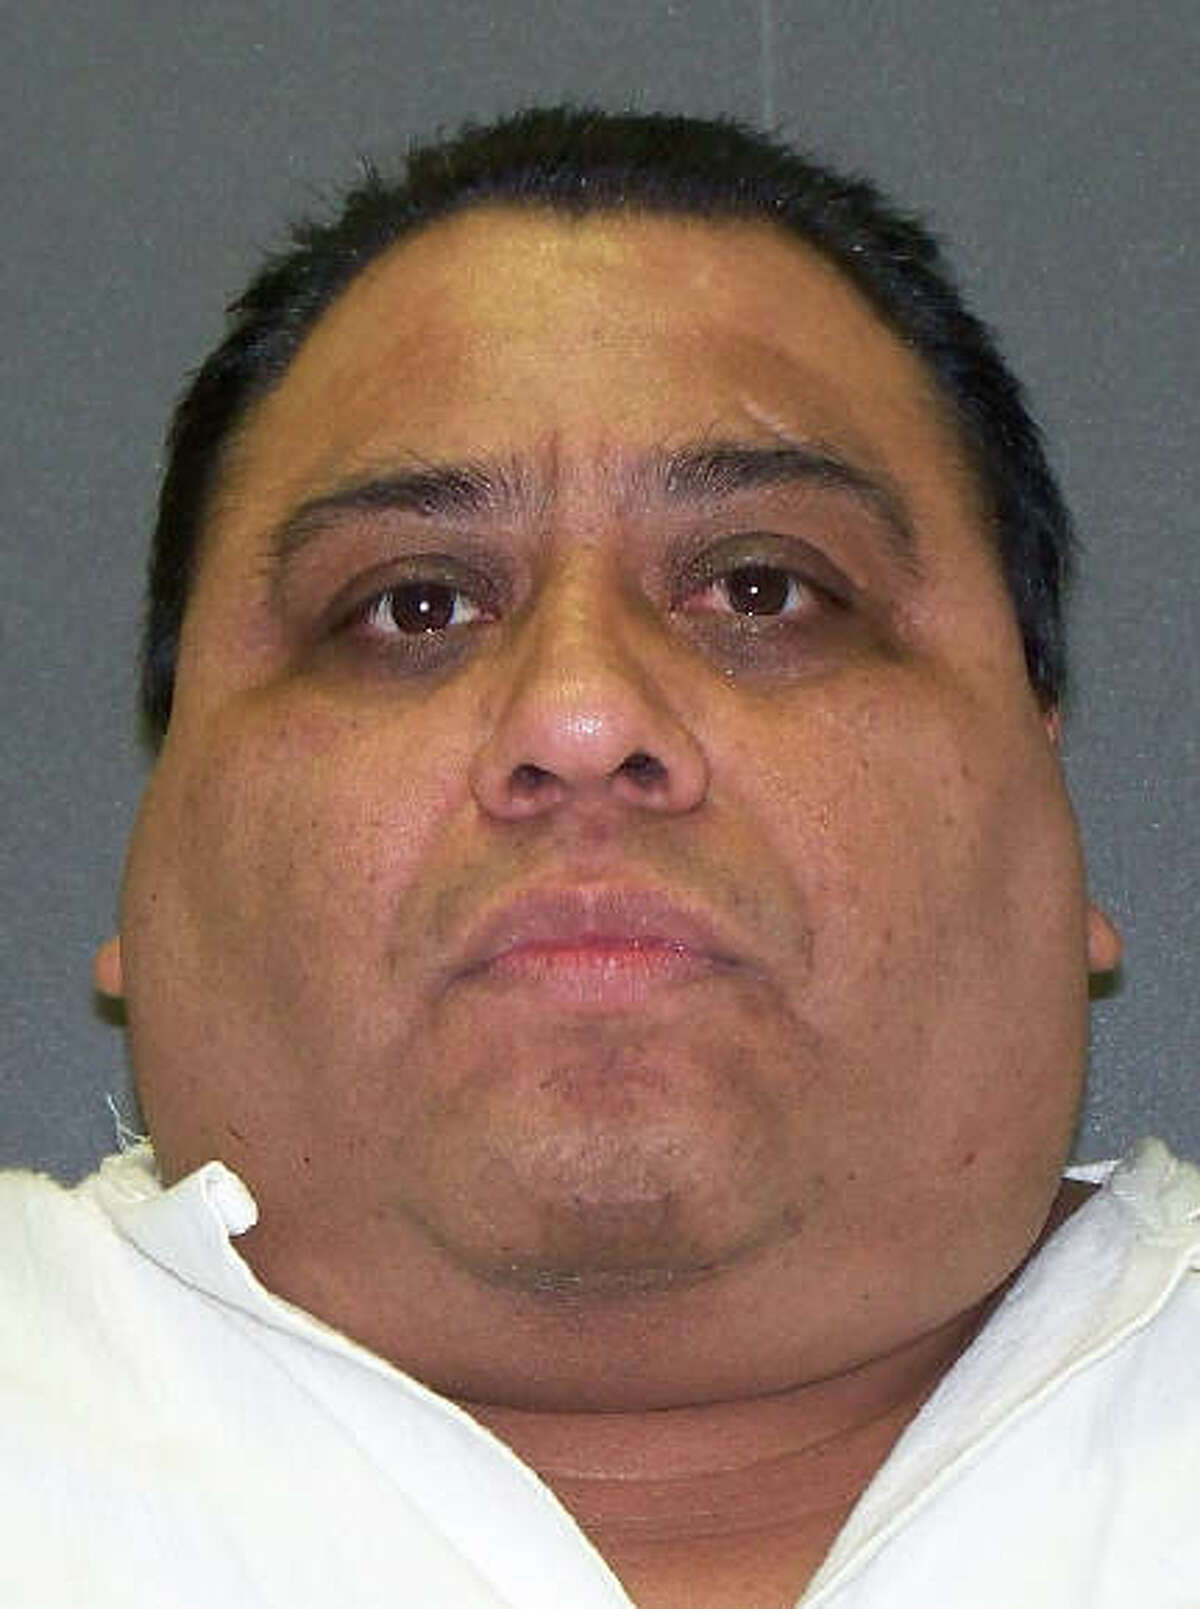 A file photo porvided by the Texas Department of Corrections is of Ramiro Hernandez-Llanas. who was scheduled to die Wednesday April 9, 2014, is shown in this file image provided by the Texas Department of Criminal Justice. Hernandez- Llanas, who escaped prison in his native Mexico while serving a murder sentence was headed to the Texas death chamber Wednesday for the fatal beating a former Baylor University history professor and attack on his wife more than 16 years ago. (AP Photo/Texas Department of Criminal Justice, File)